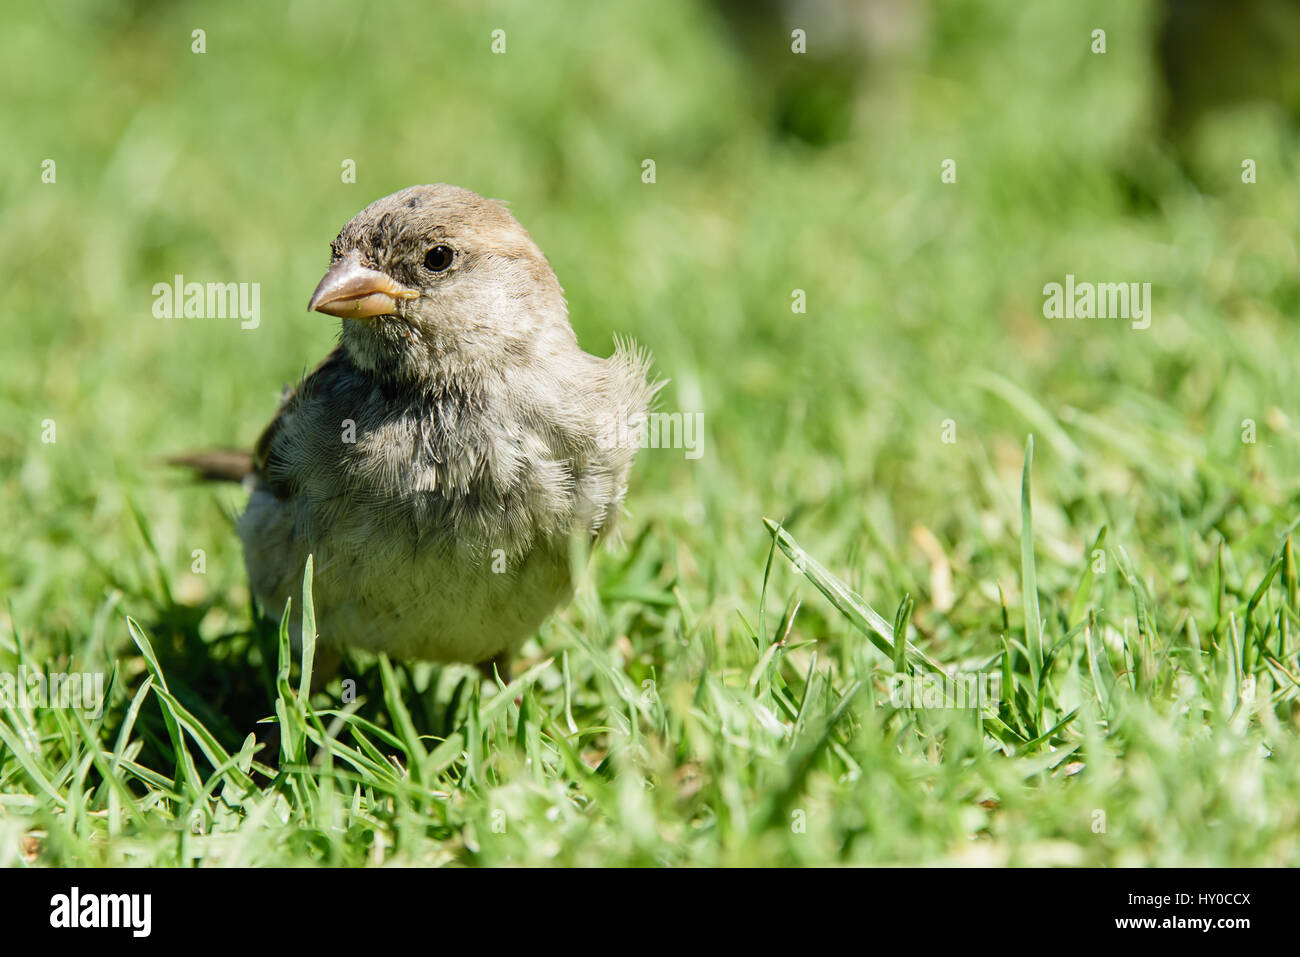 New Zealand house sparrows in a field Stock Photo